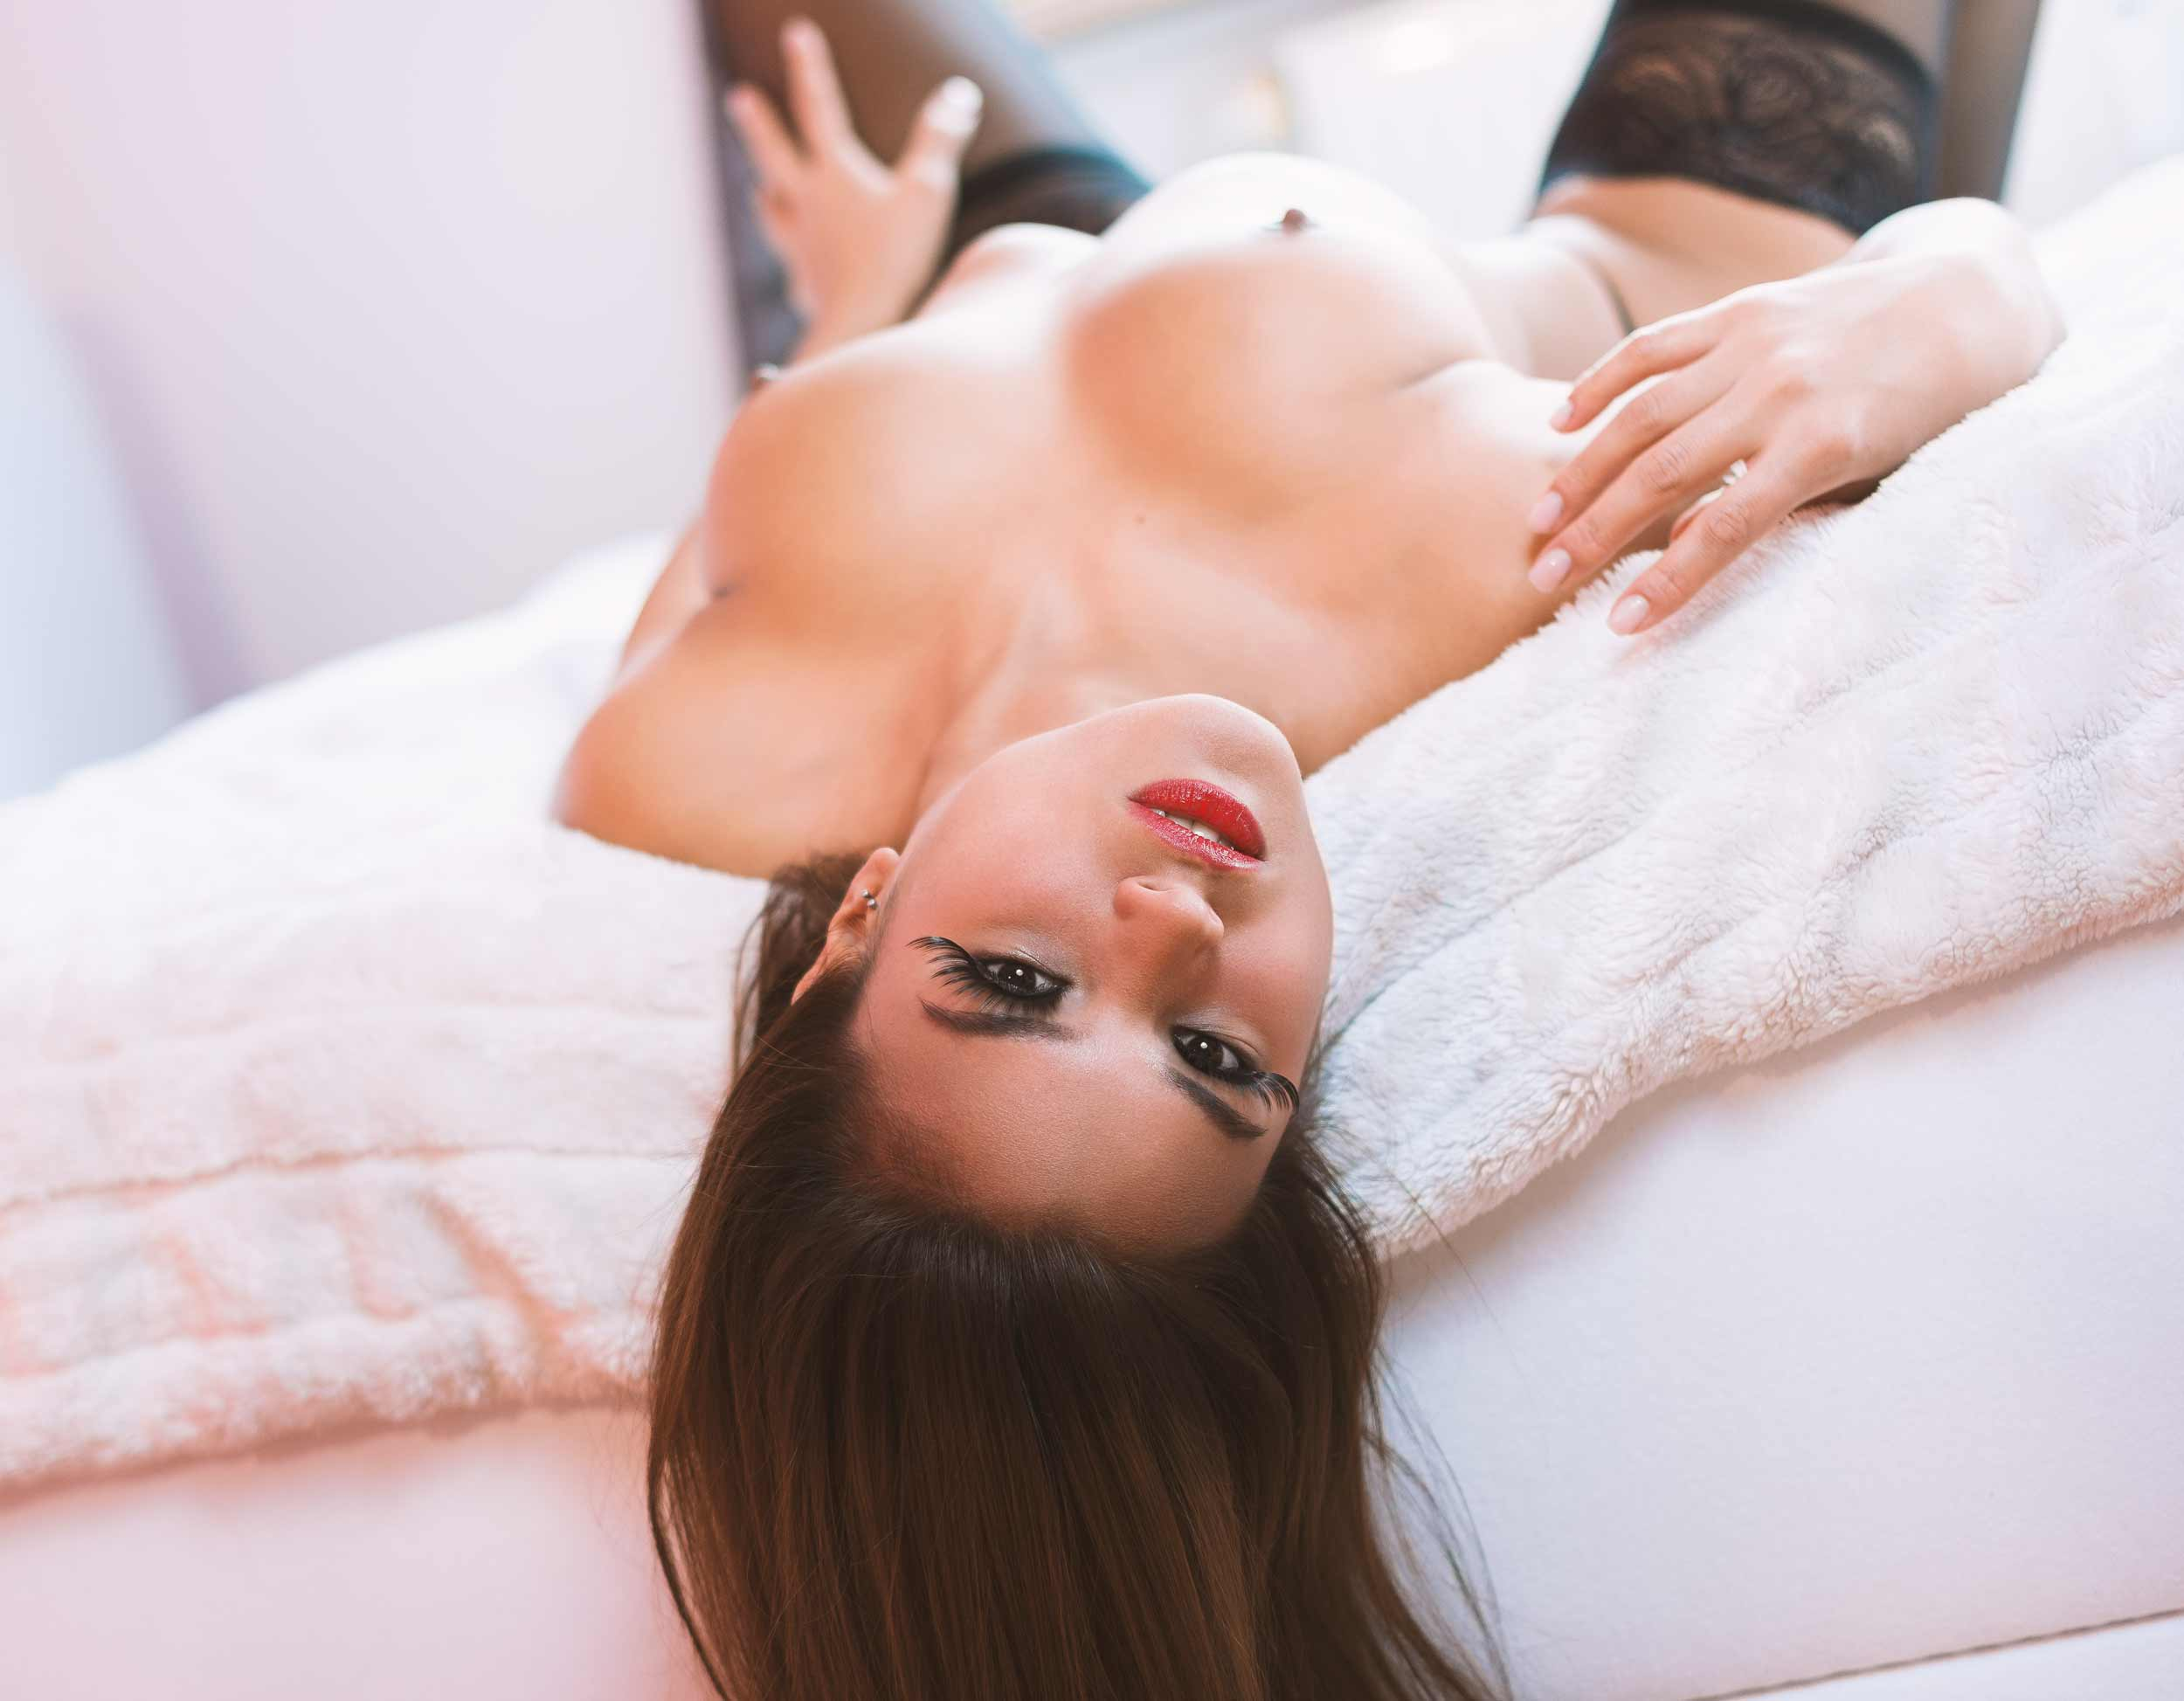 irina on the bed, erotic shoot munich. erotikfotografie münchen